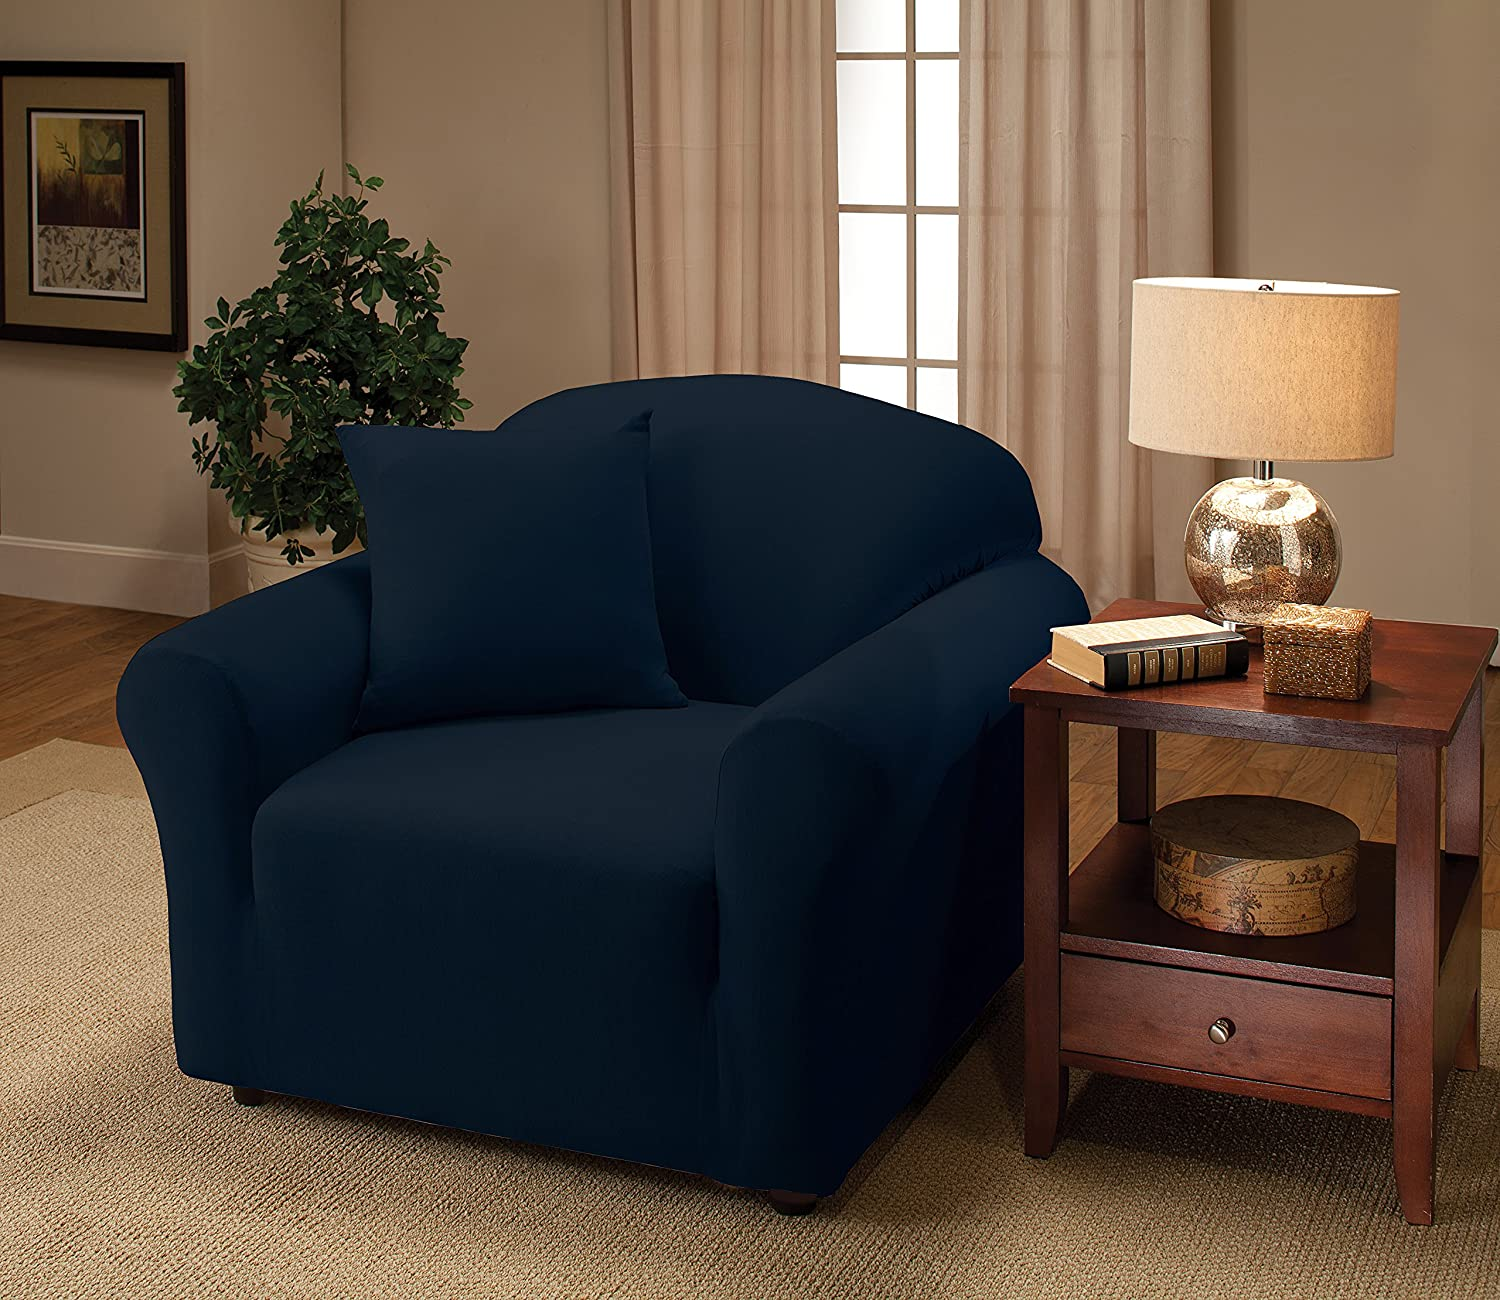 Amazon.com Madison Stretch Jersey Sofa Slipcover Solid Navy Home u0026 Kitchen & Amazon.com: Madison Stretch Jersey Sofa Slipcover Solid Navy ... islam-shia.org